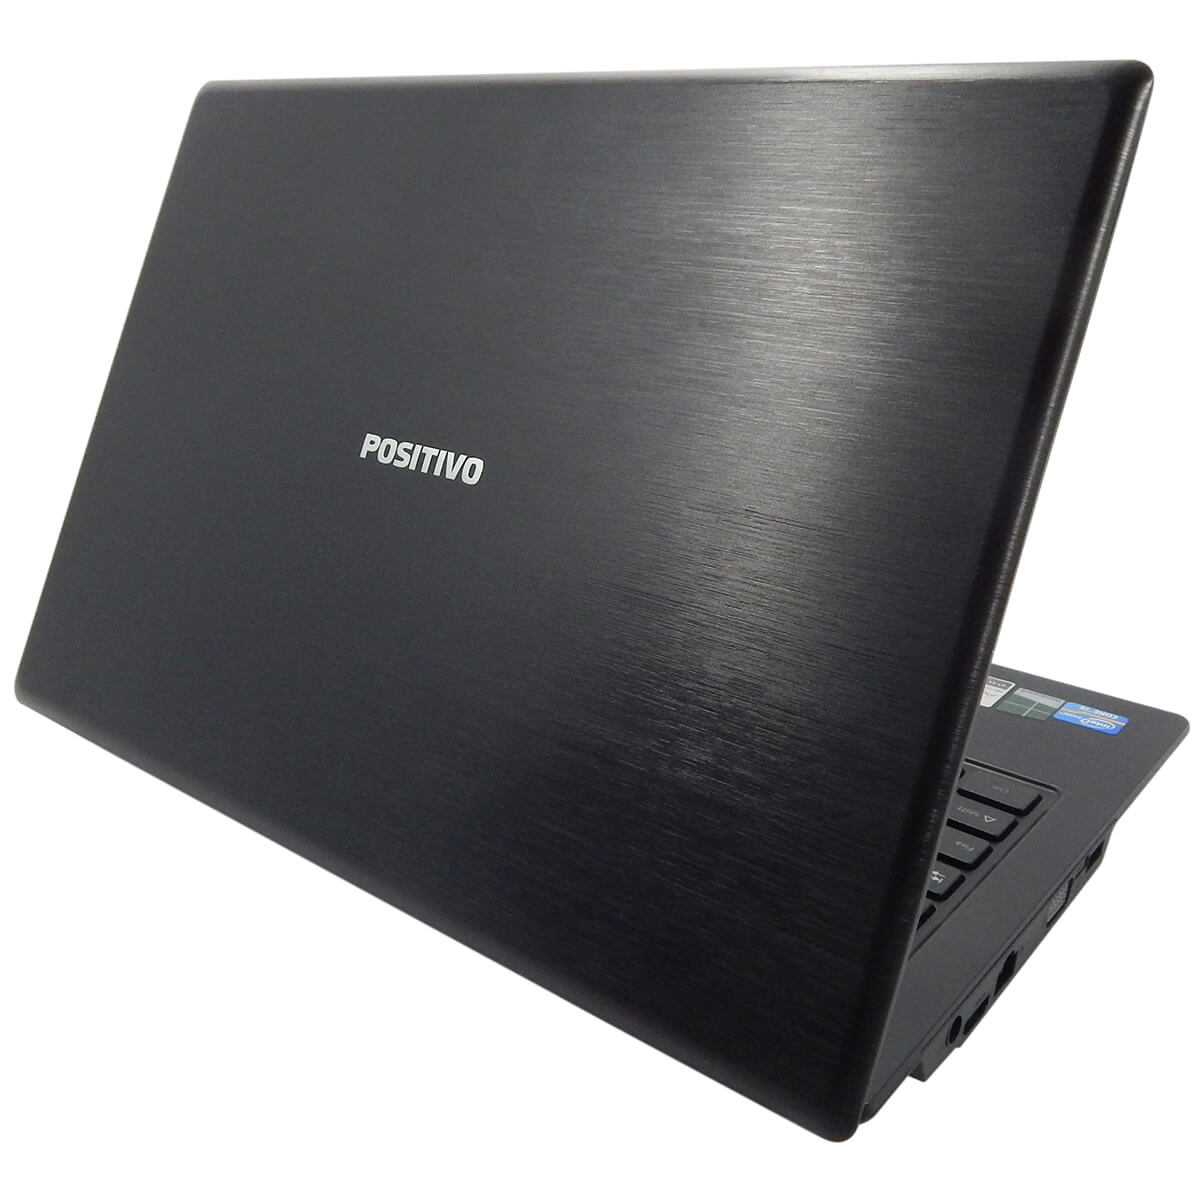 NOTEBOOK Positivo Premium S5400 I5-2450m 8Gb 500gb Dvd - Seminovo